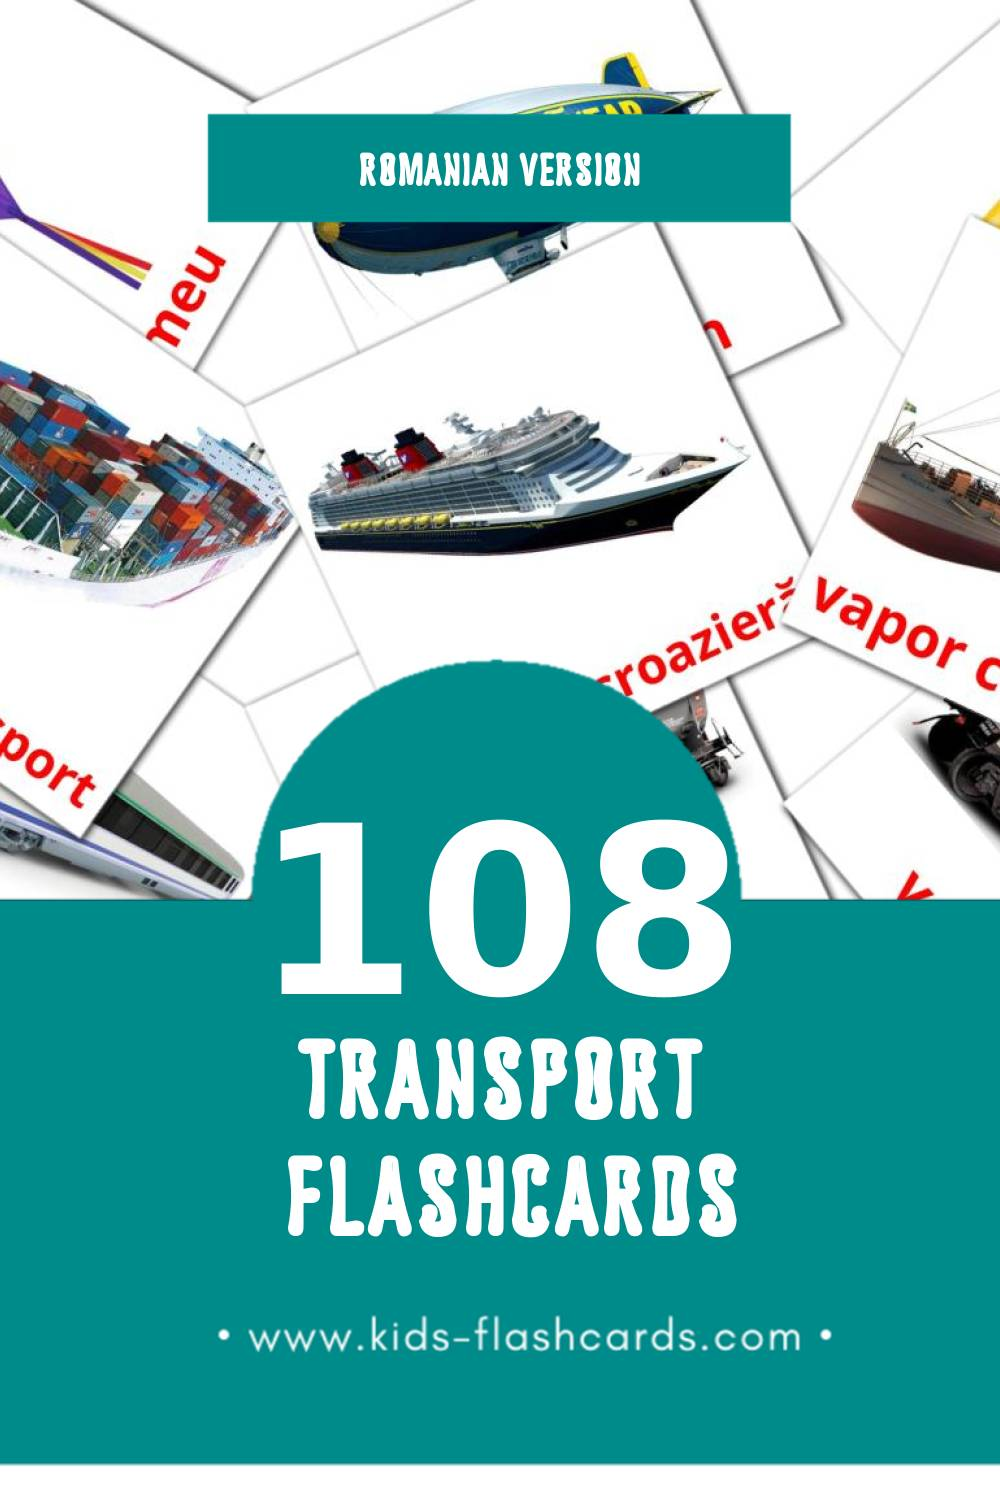 Visual Transport Flashcards for Toddlers (108 cards in Romanian)